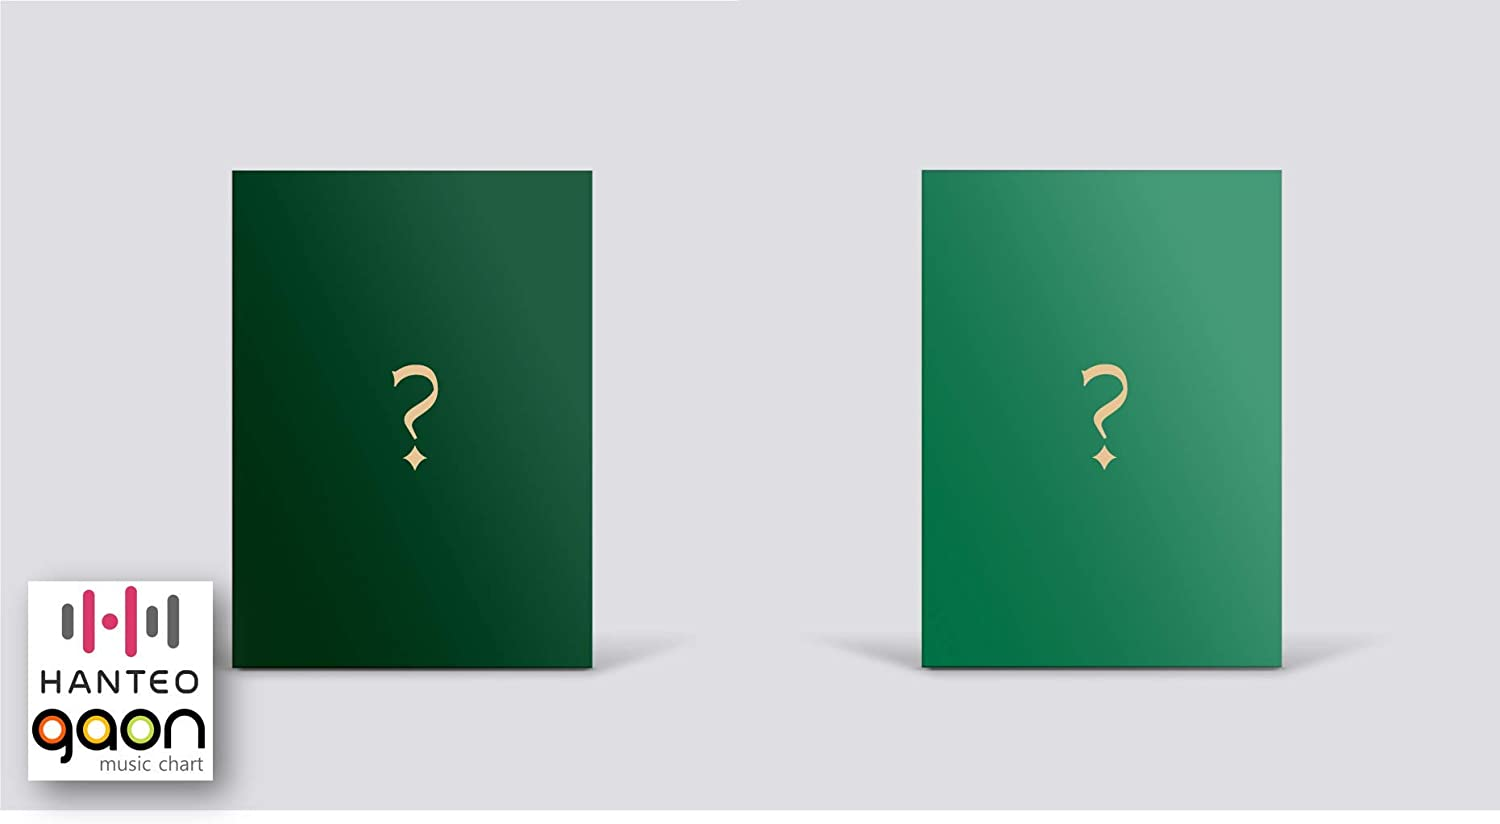 Mamamoo - Travel [Deep Green+Light Green Full Set ver.] (10th Mini Album) [Pre Order] 2CD+2Booklet+2Folded Poster+Others with Tracking, Extra Decorative Stickers, Photocards